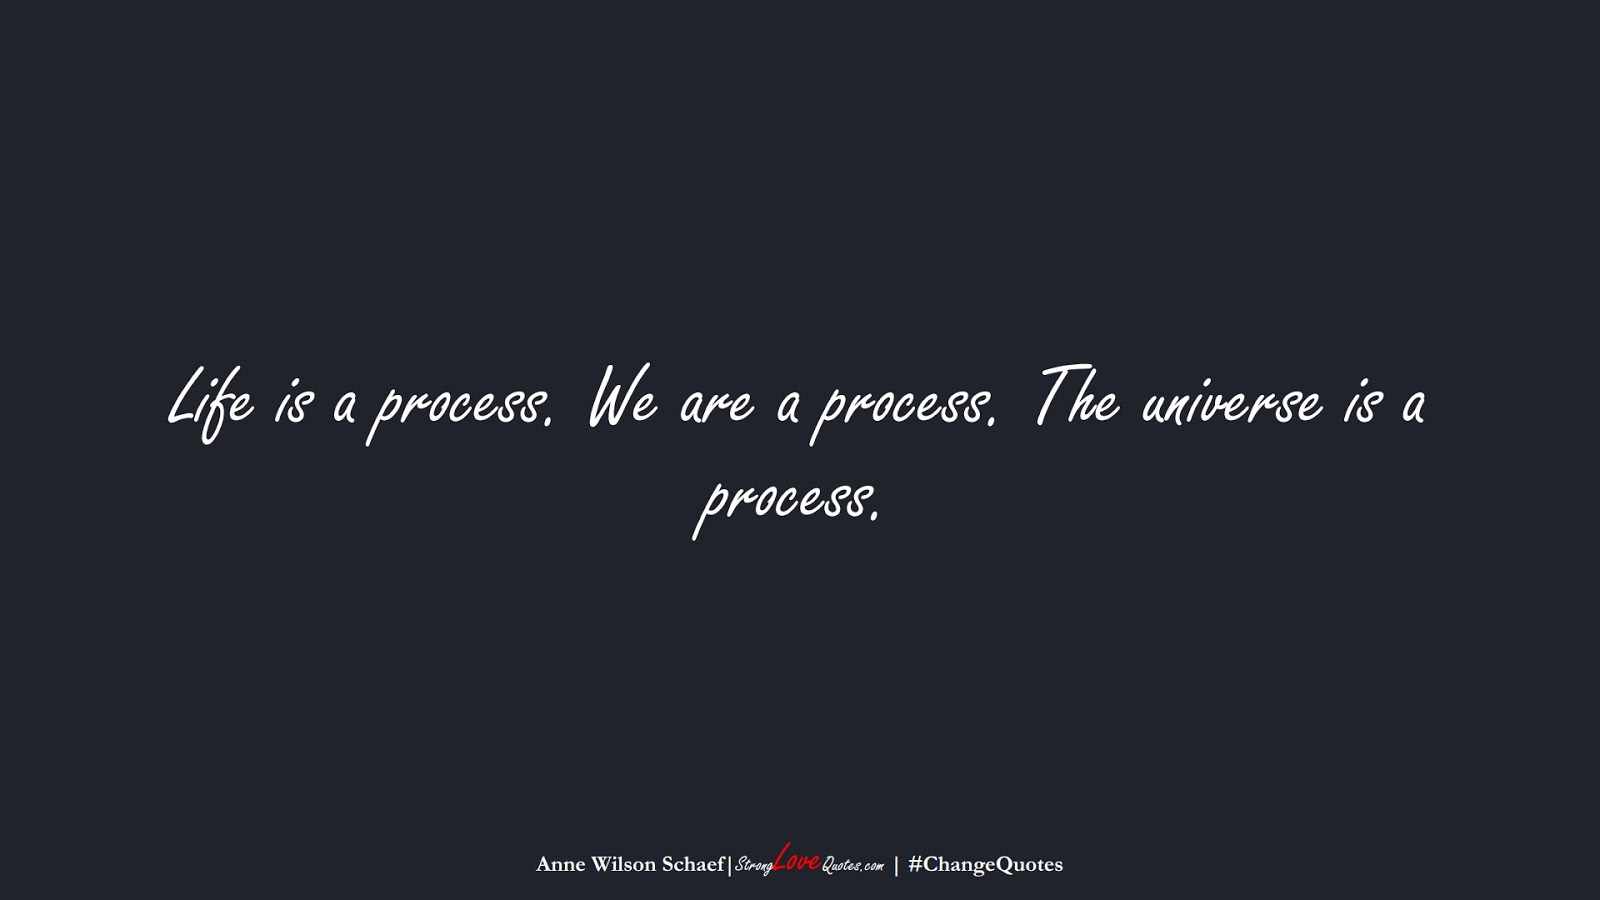 Life is a process. We are a process. The universe is a process. (Anne Wilson Schaef);  #ChangeQuotes